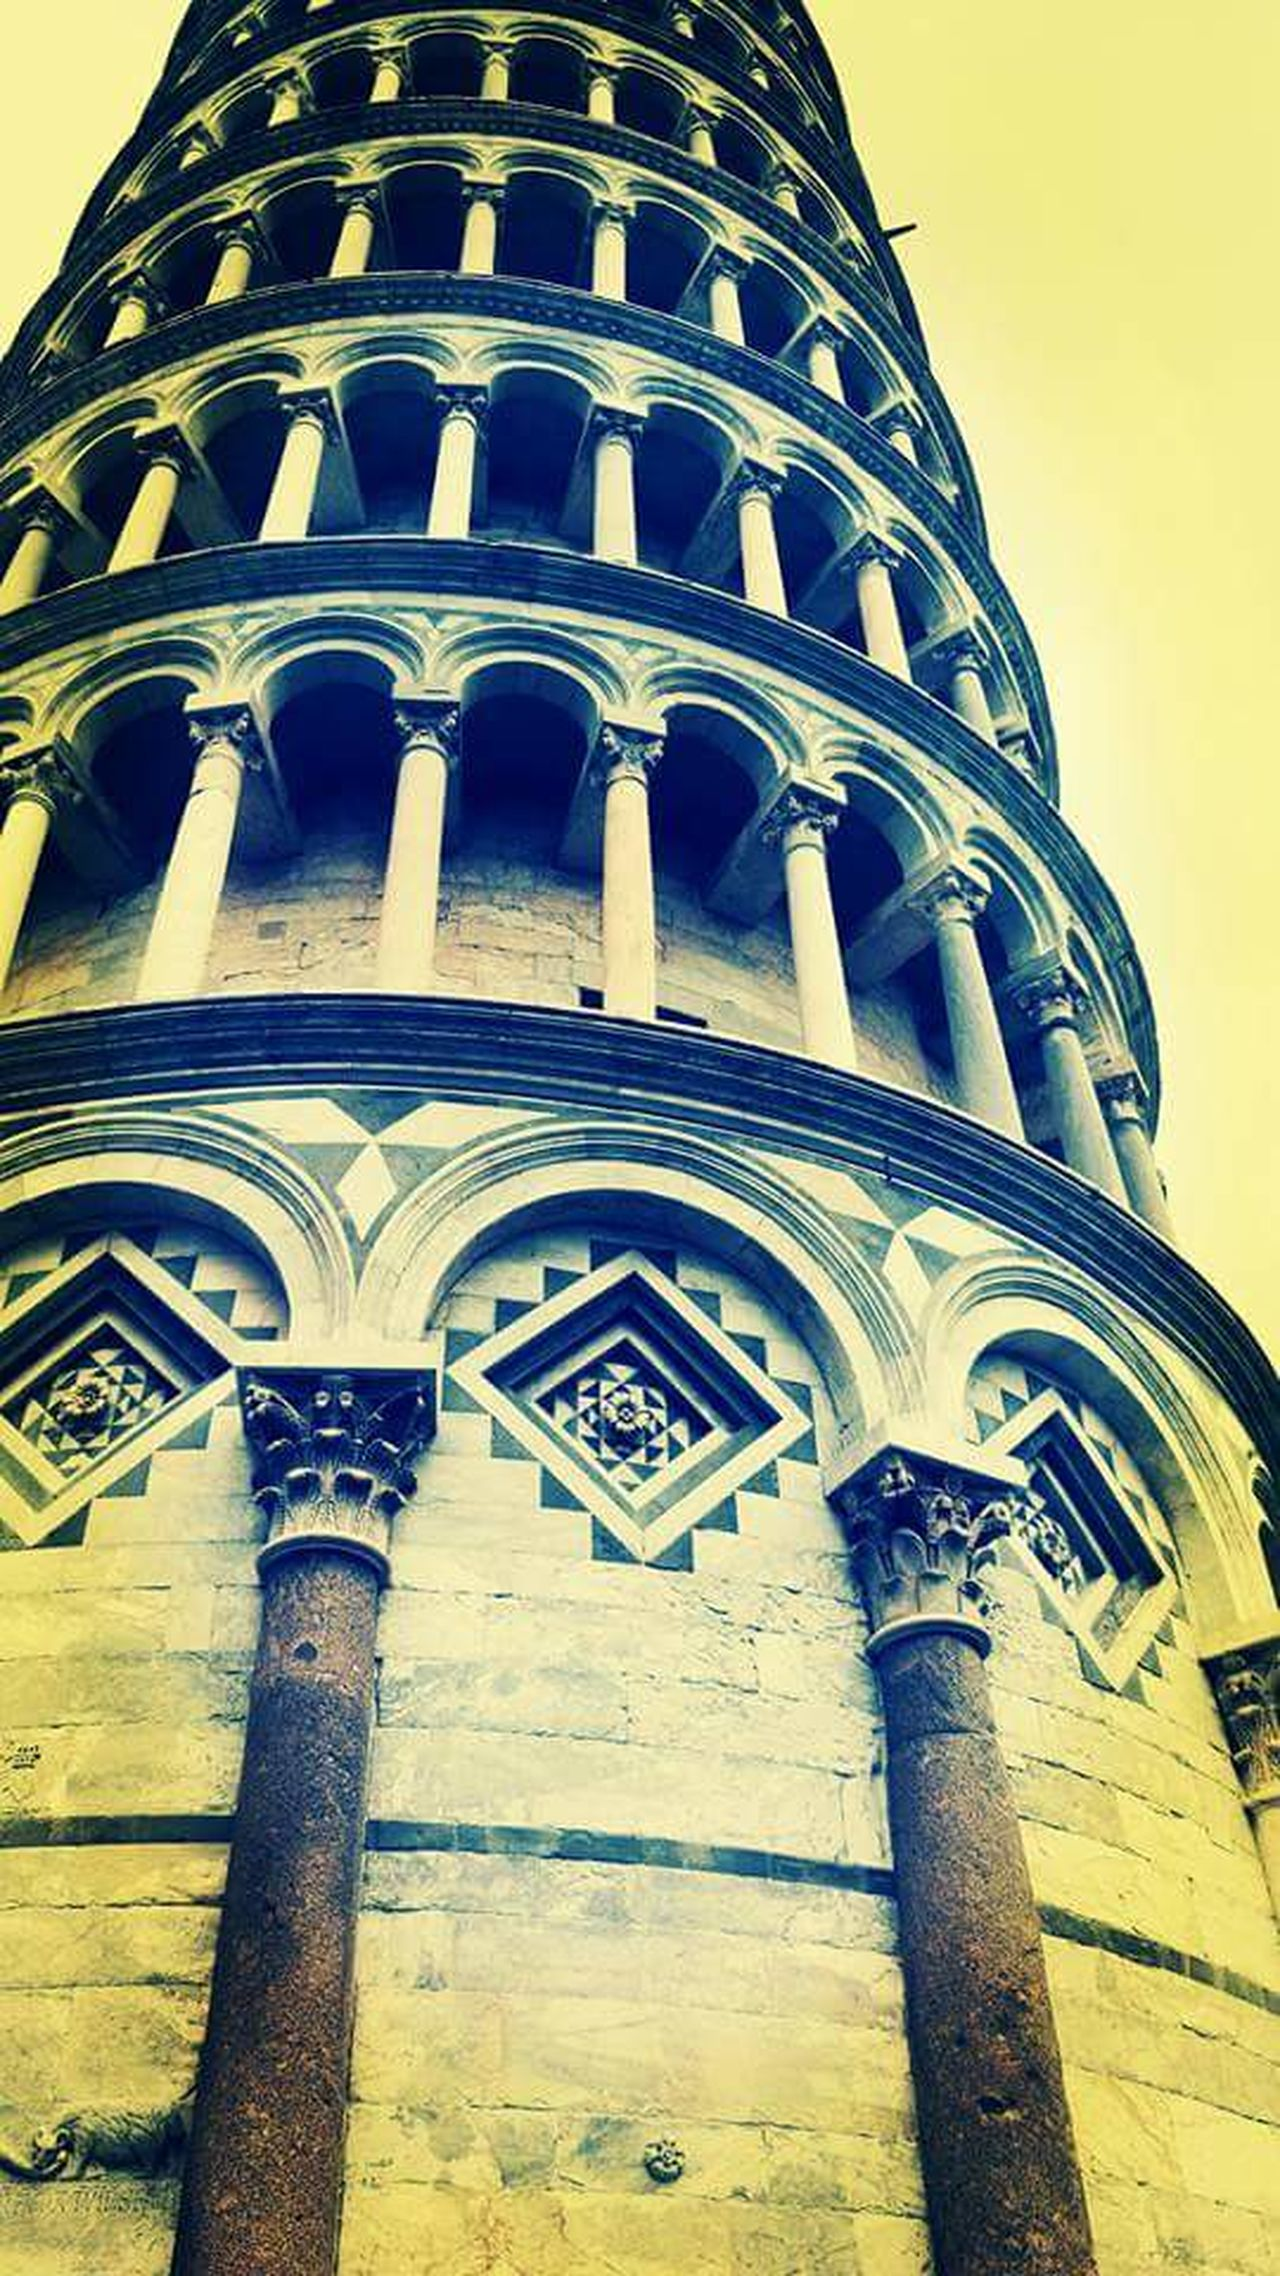 Architecture Low Angle View Dome History Travel Destinations Tourism Travel No People Built Structure Building Exterior City Sky Day Italy 🇮🇹 Pisa Tower Pisa - Italy Pisa ND Productions